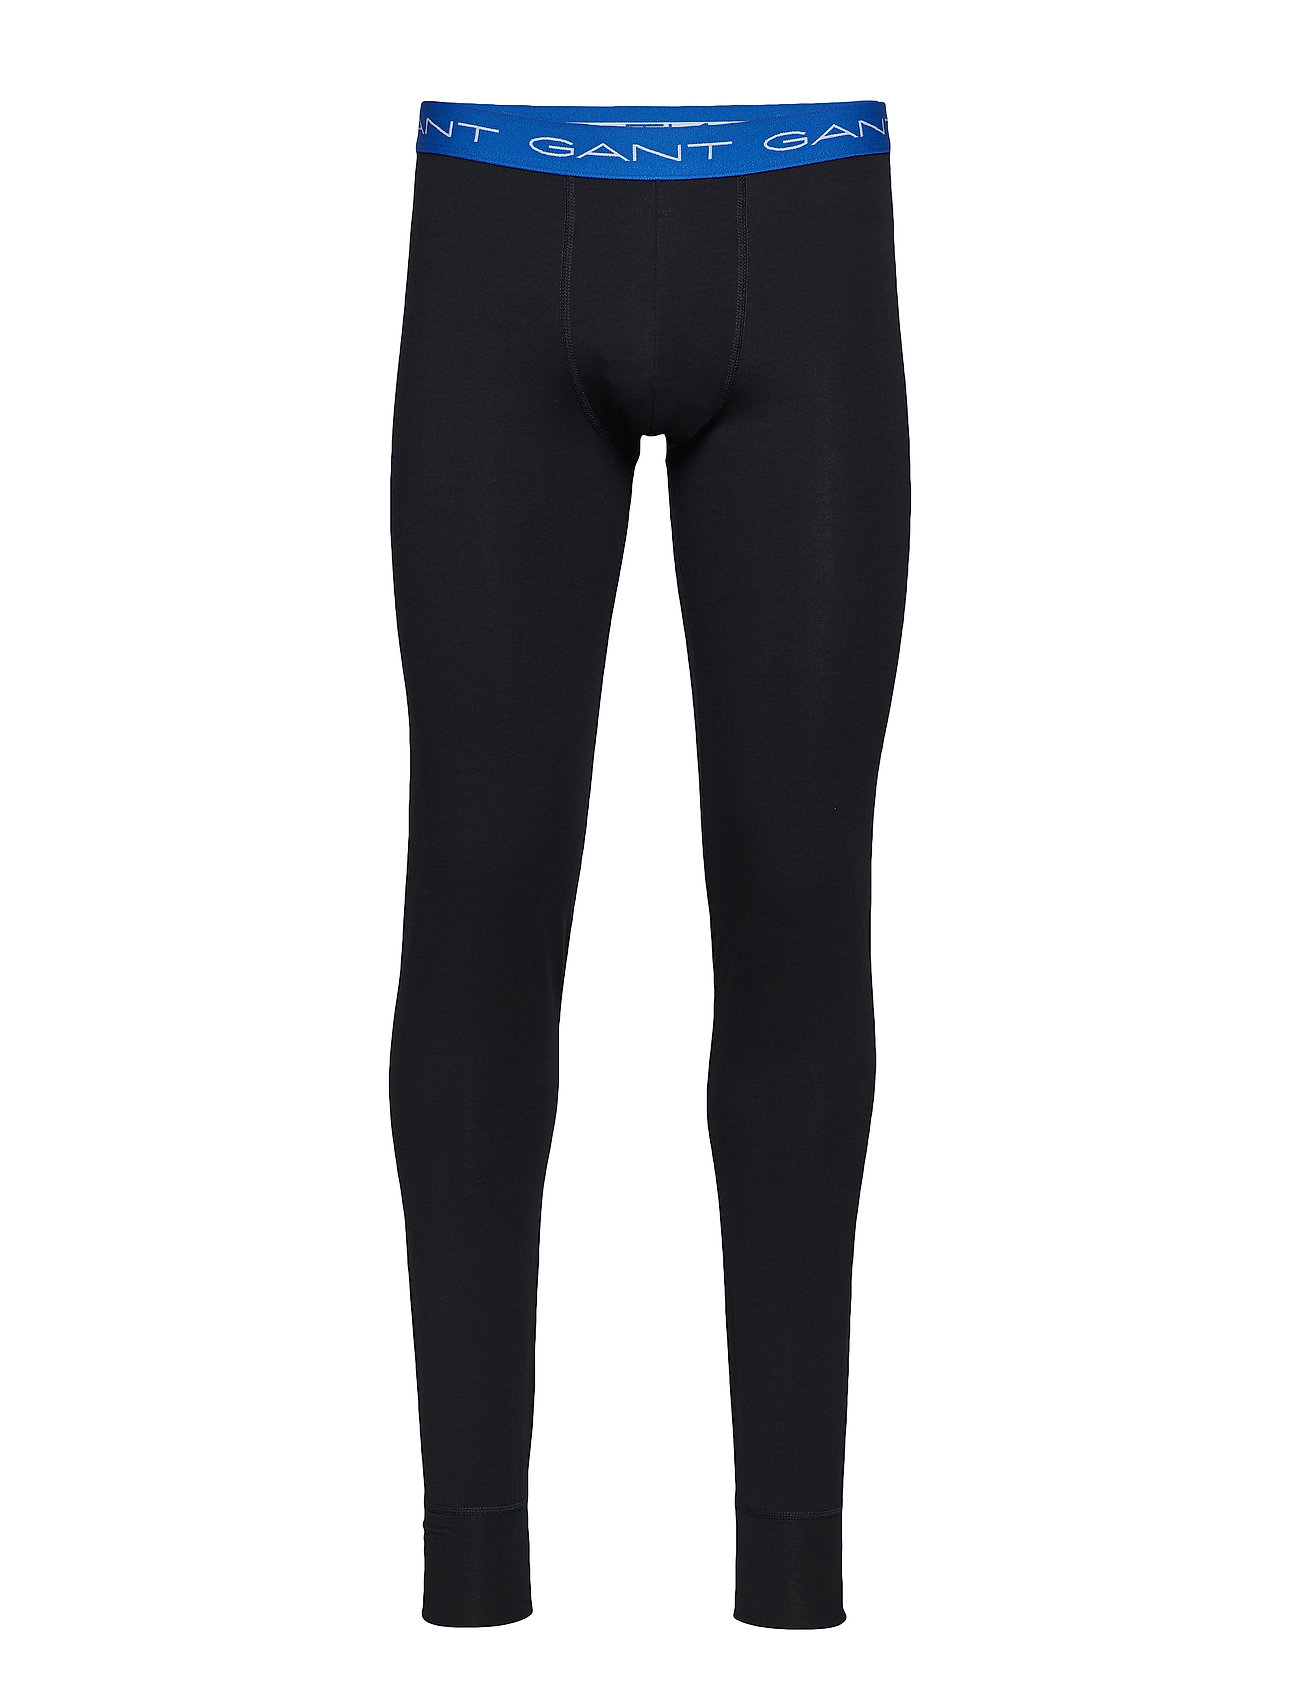 GANT LONG JOHNS SOLID COTTON STRETCH - BLACK